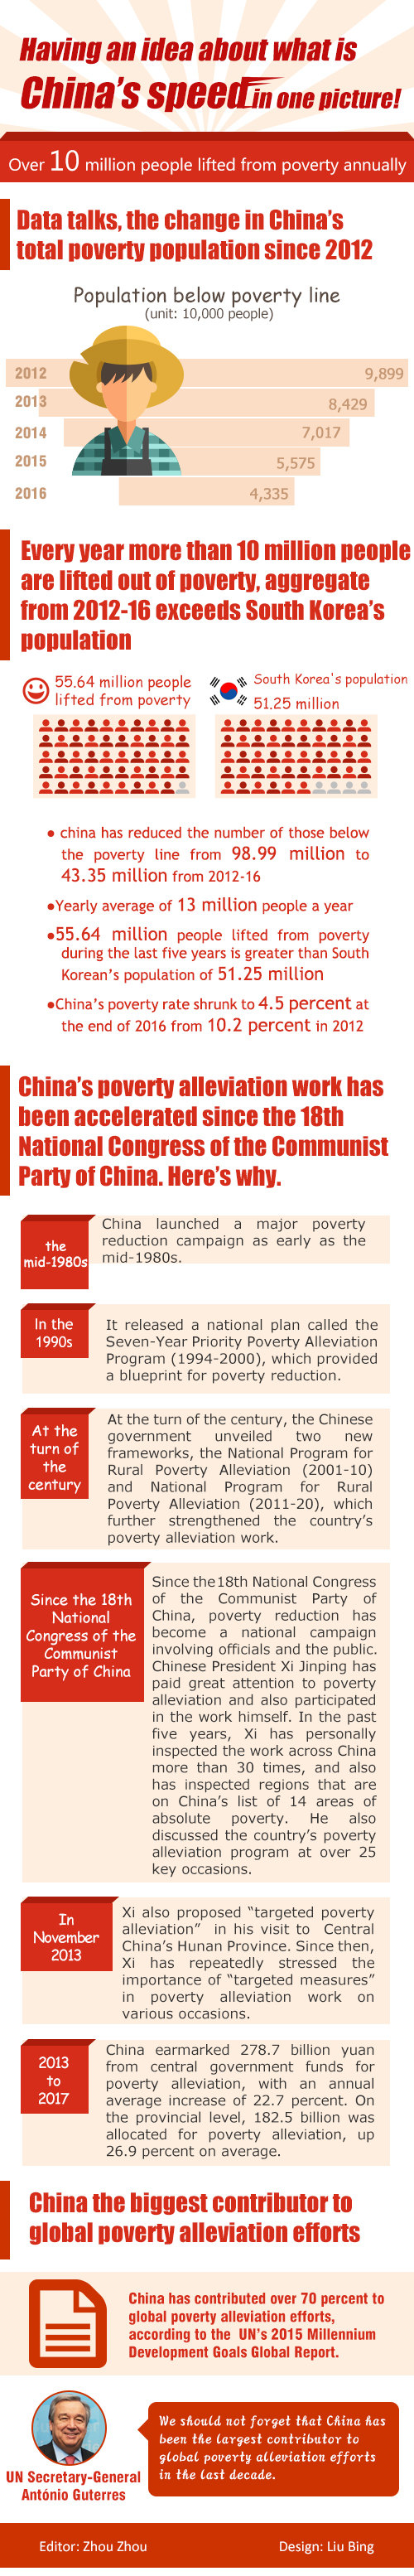 Infographics: China biggest contributor to global poverty alleviation